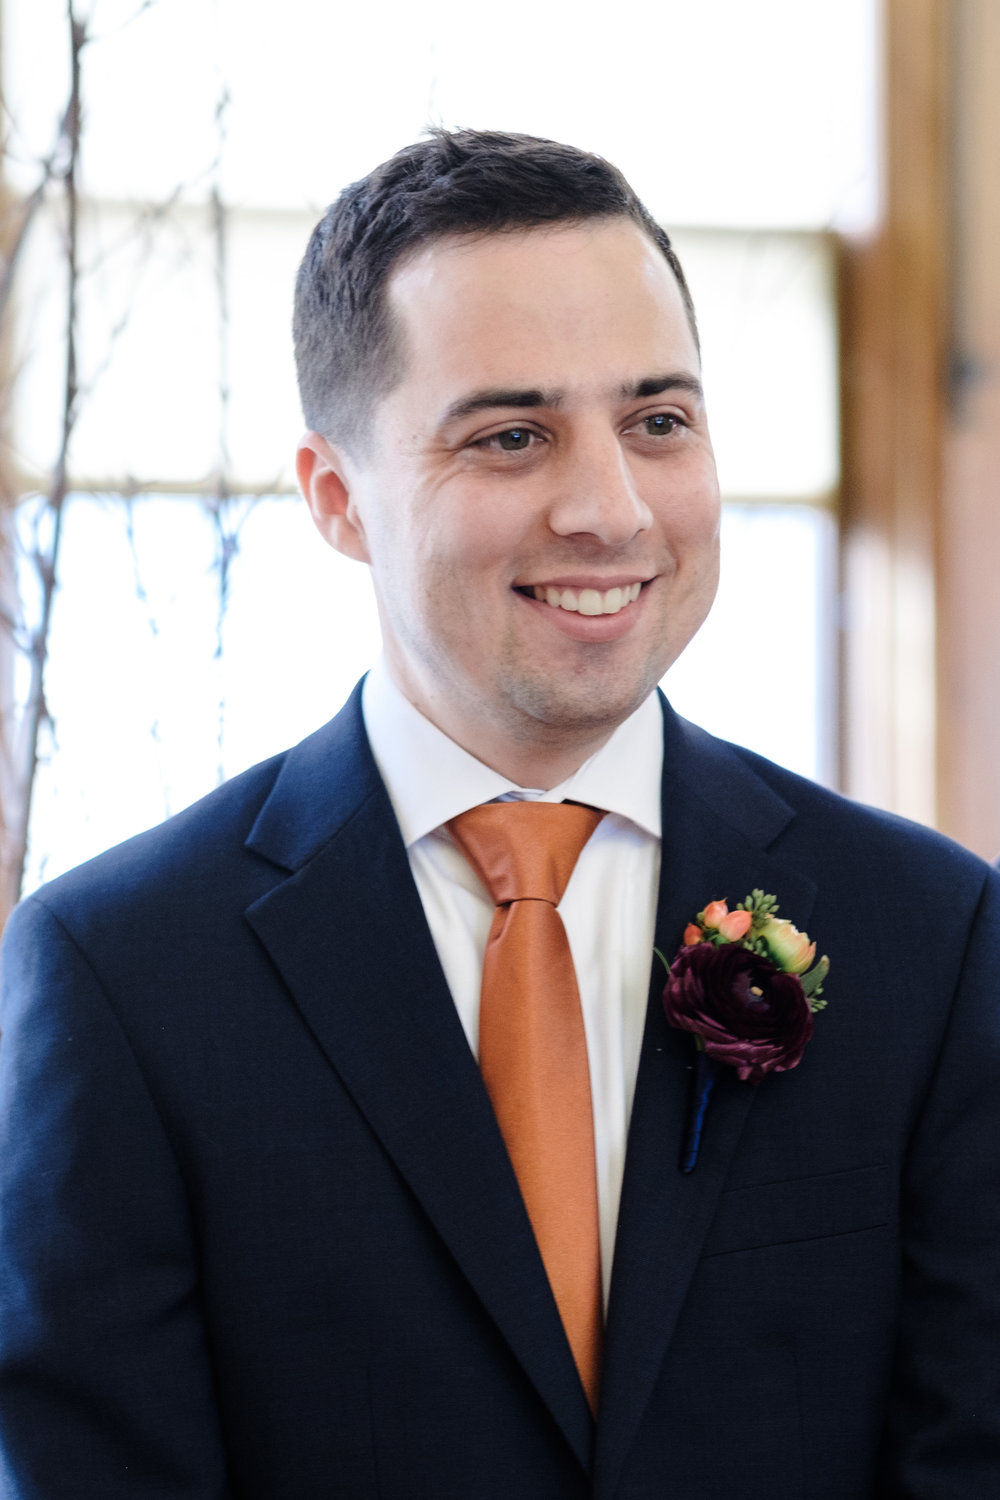 Groom in orange tie and blue suite seeing his bride for the first time at their elegant wedding.